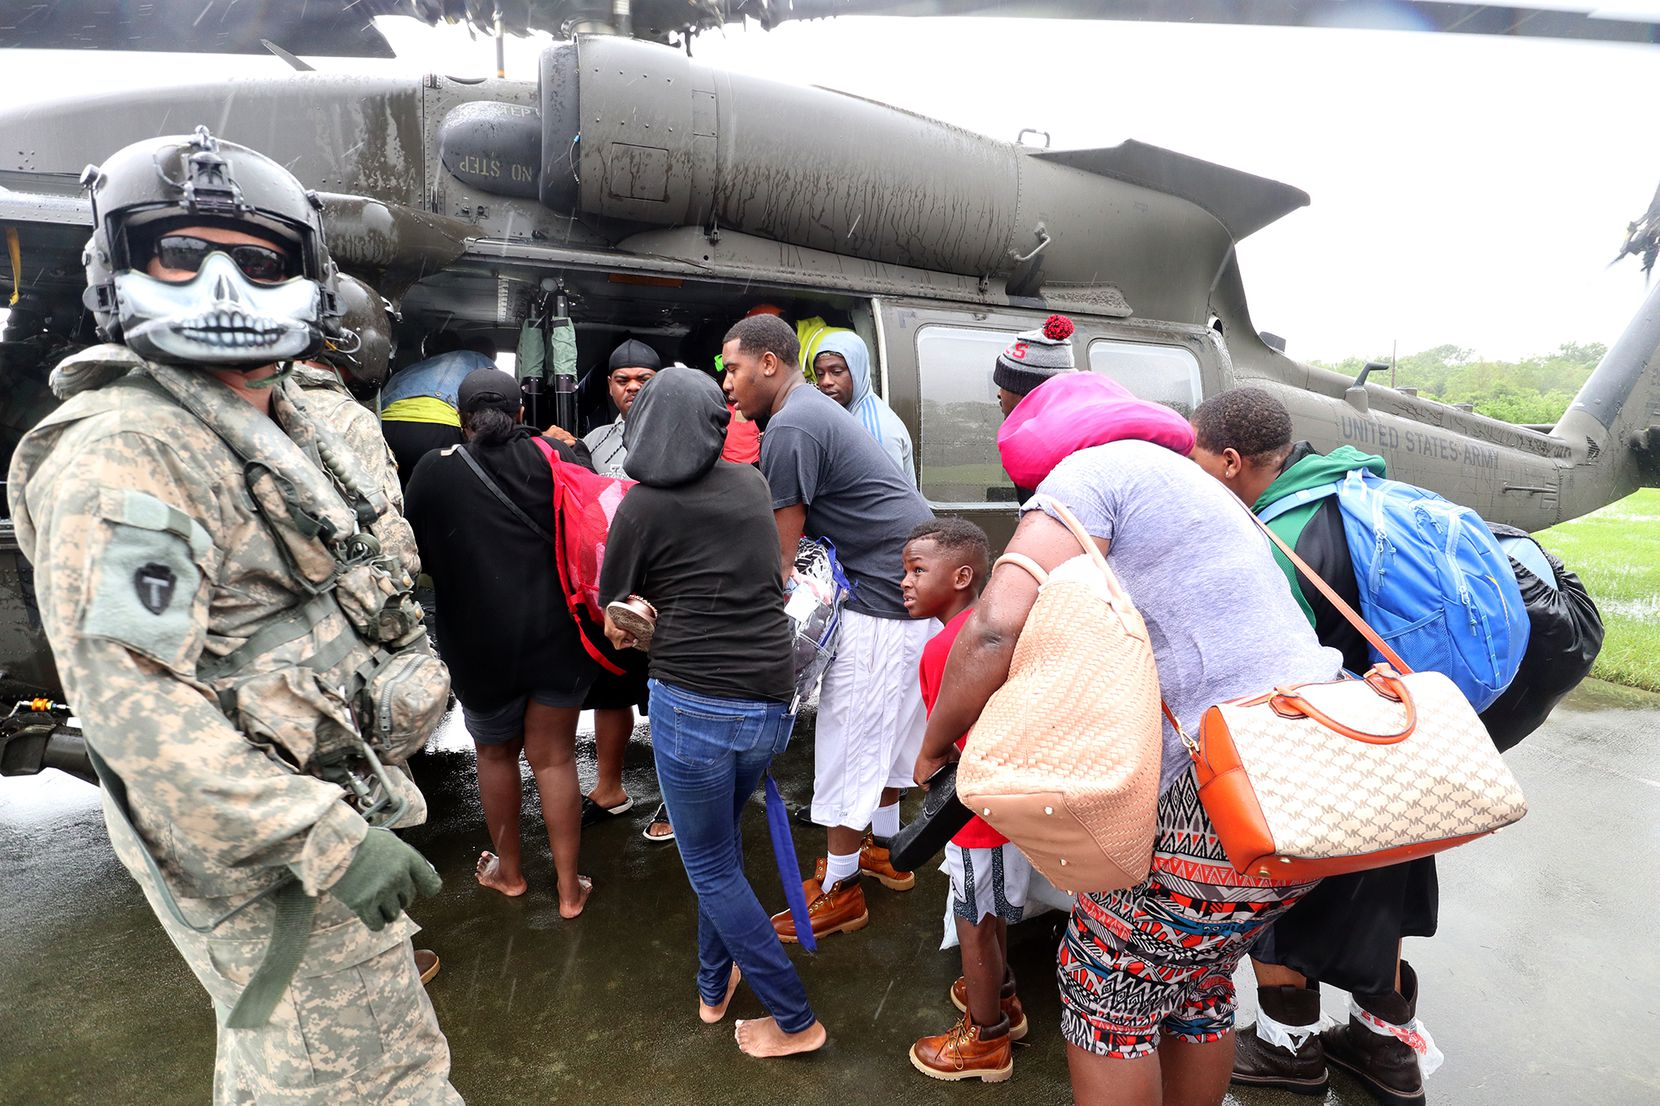 Victims from flooding from Harvey, board a waiting National Guard Black Hawk helicopter, on the basketball court of Valley View apartments, in Port Arthur Texas, August 30, 2017.